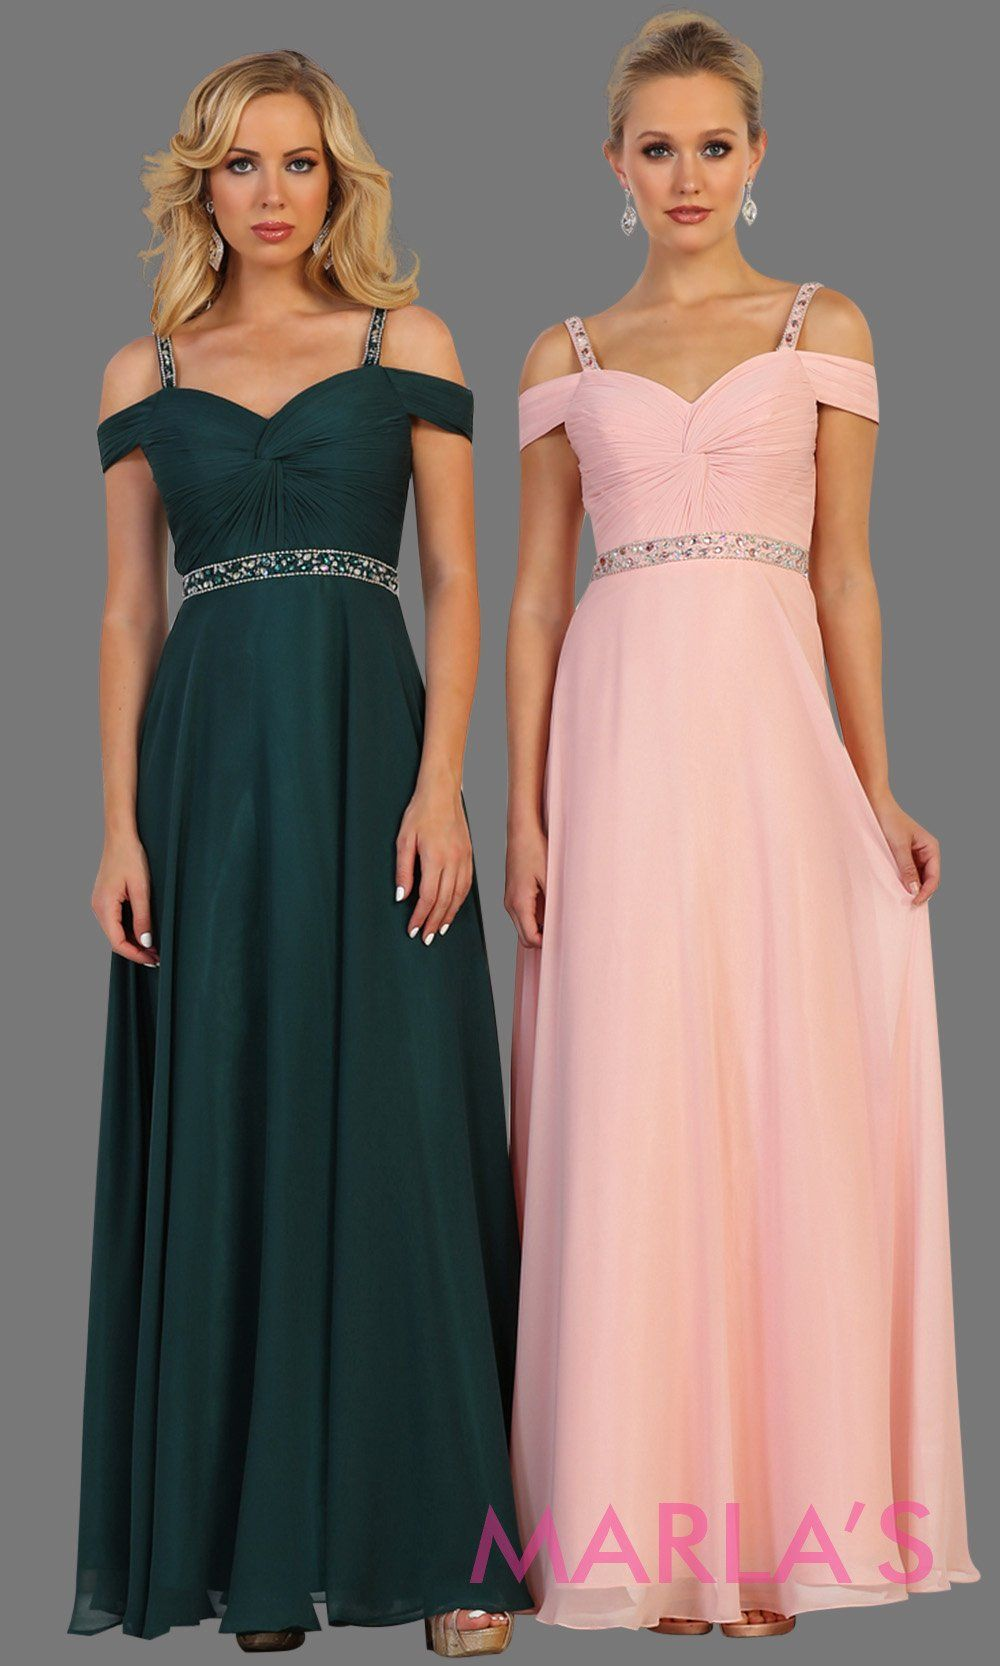 Long dark green flowy dress with cold shoulder and beaded waist. Perfect for prom, wedding guest dress, bridesmaid dress, formal party gown, eveing party dress. This green off shoulder is available in plus size.